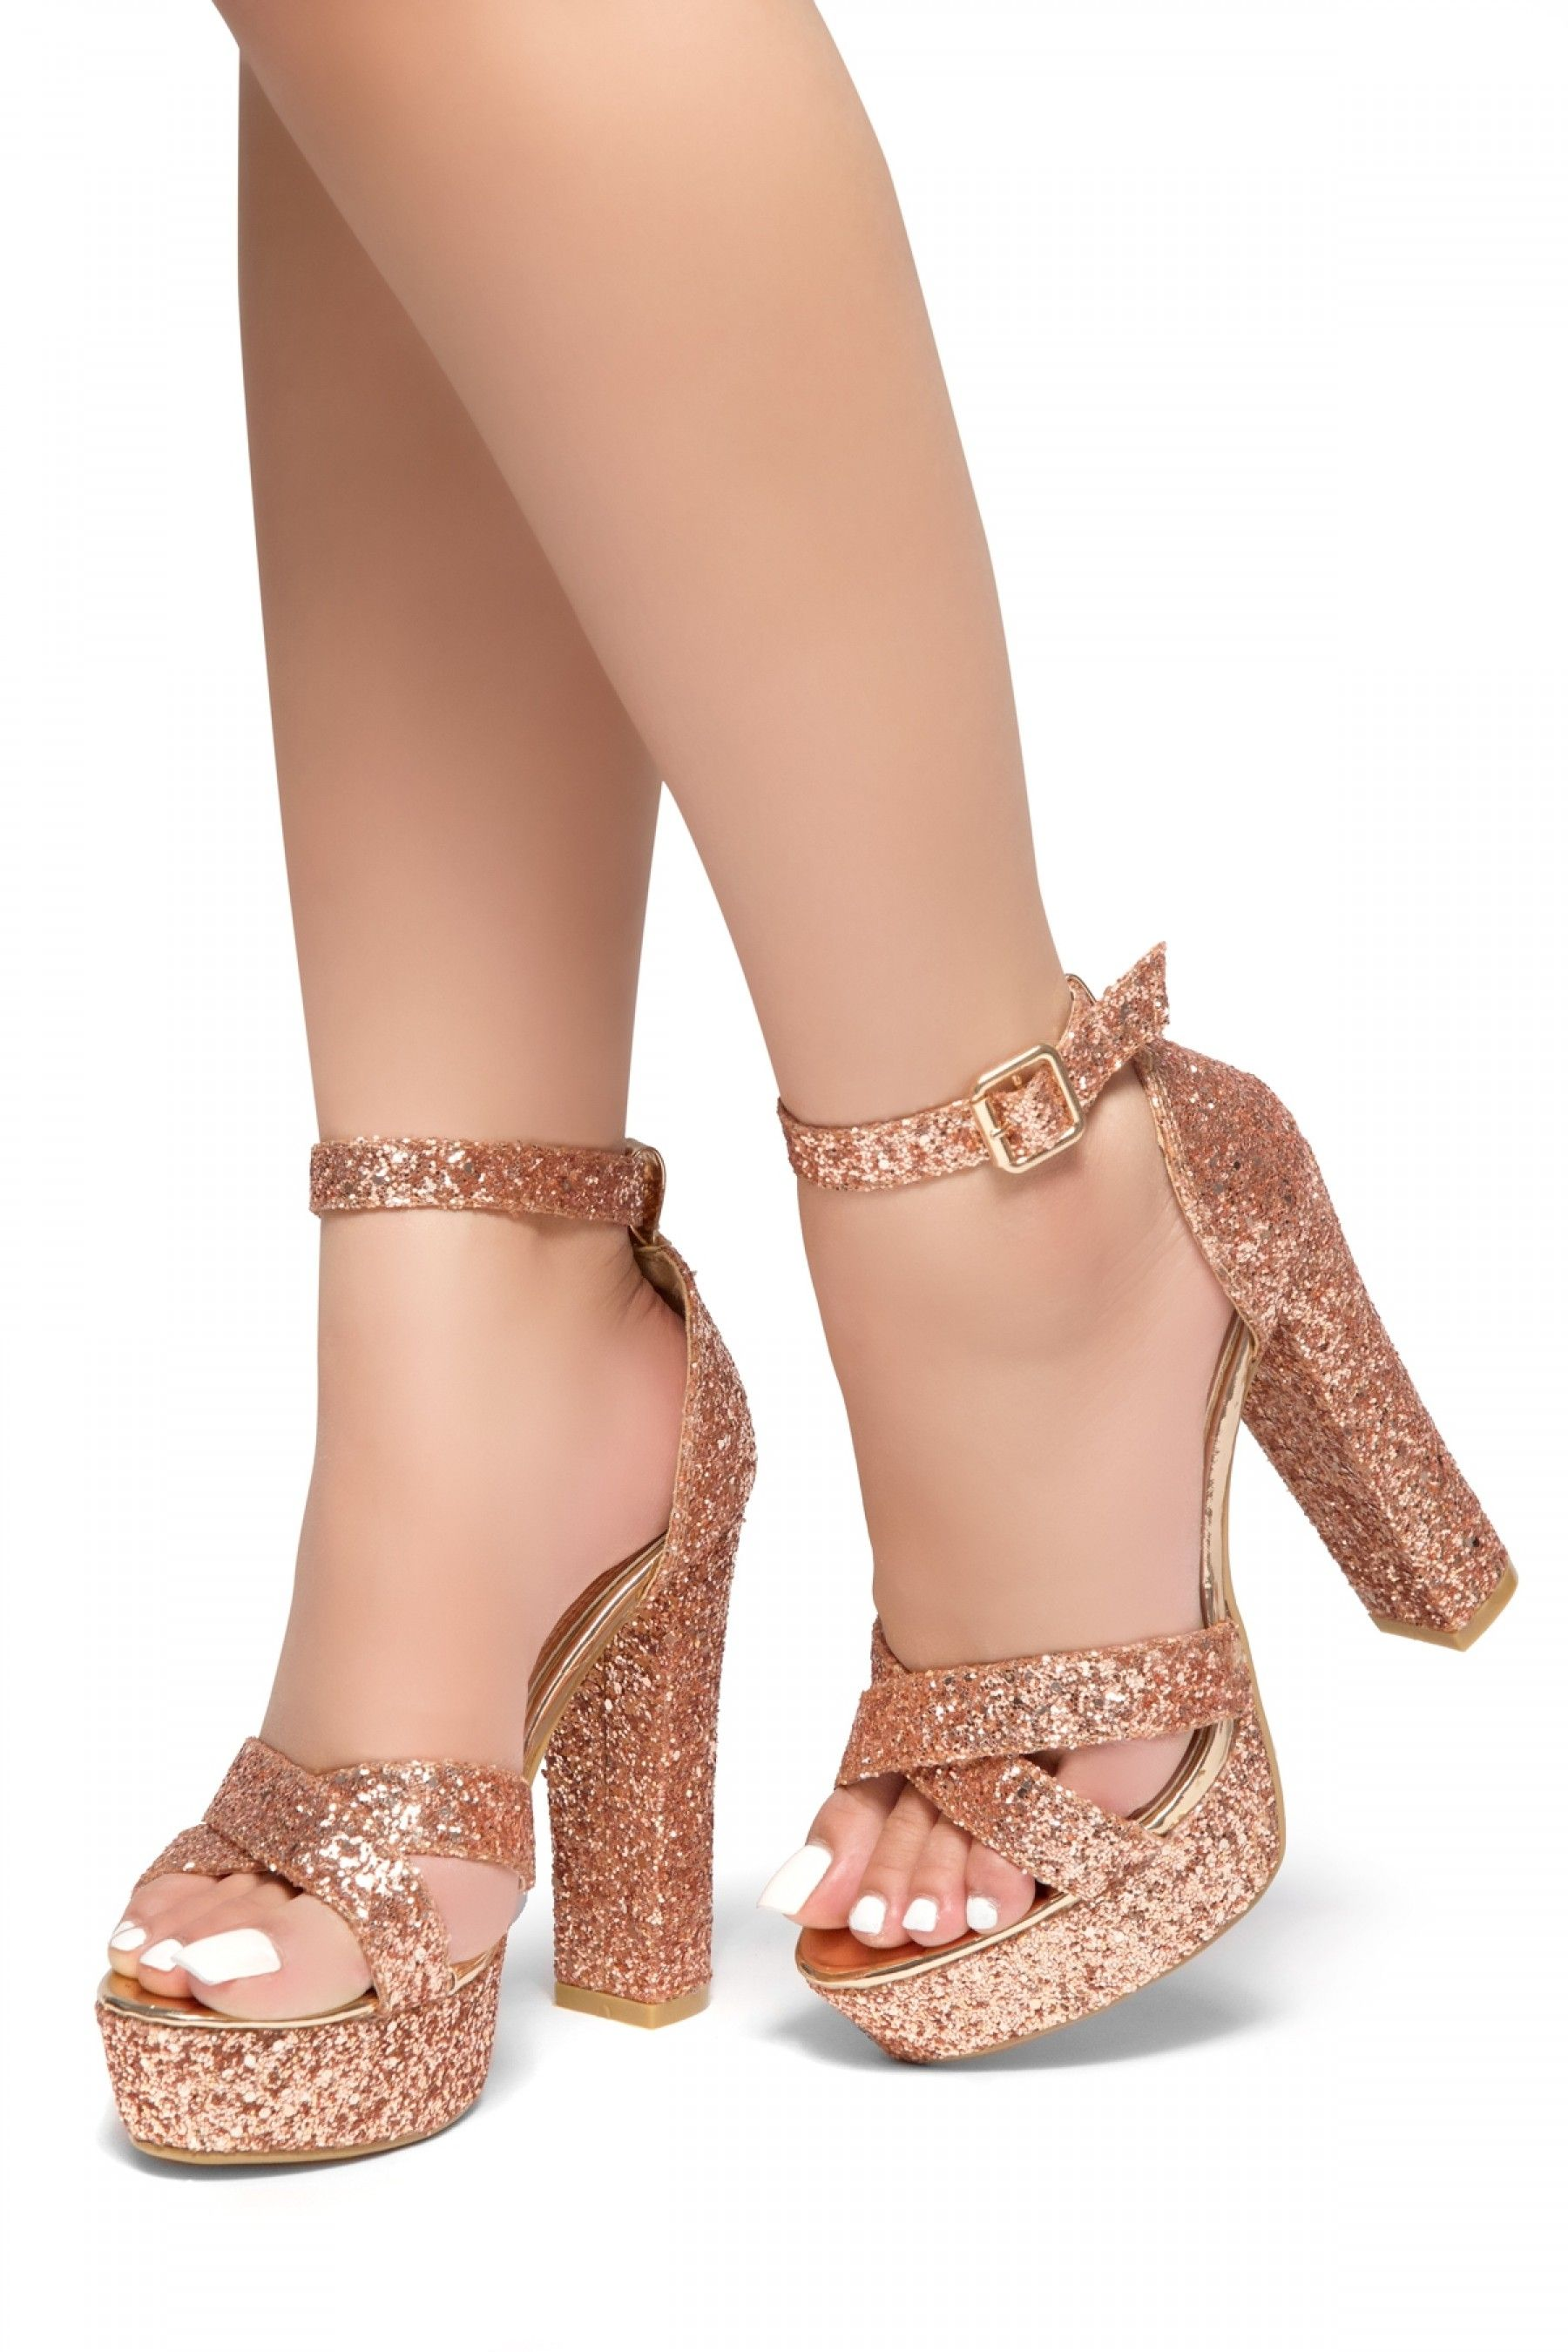 HerStyle PLAY DATE-Glitter with platform sandals (RoseGold Glitter ... e97b96c549